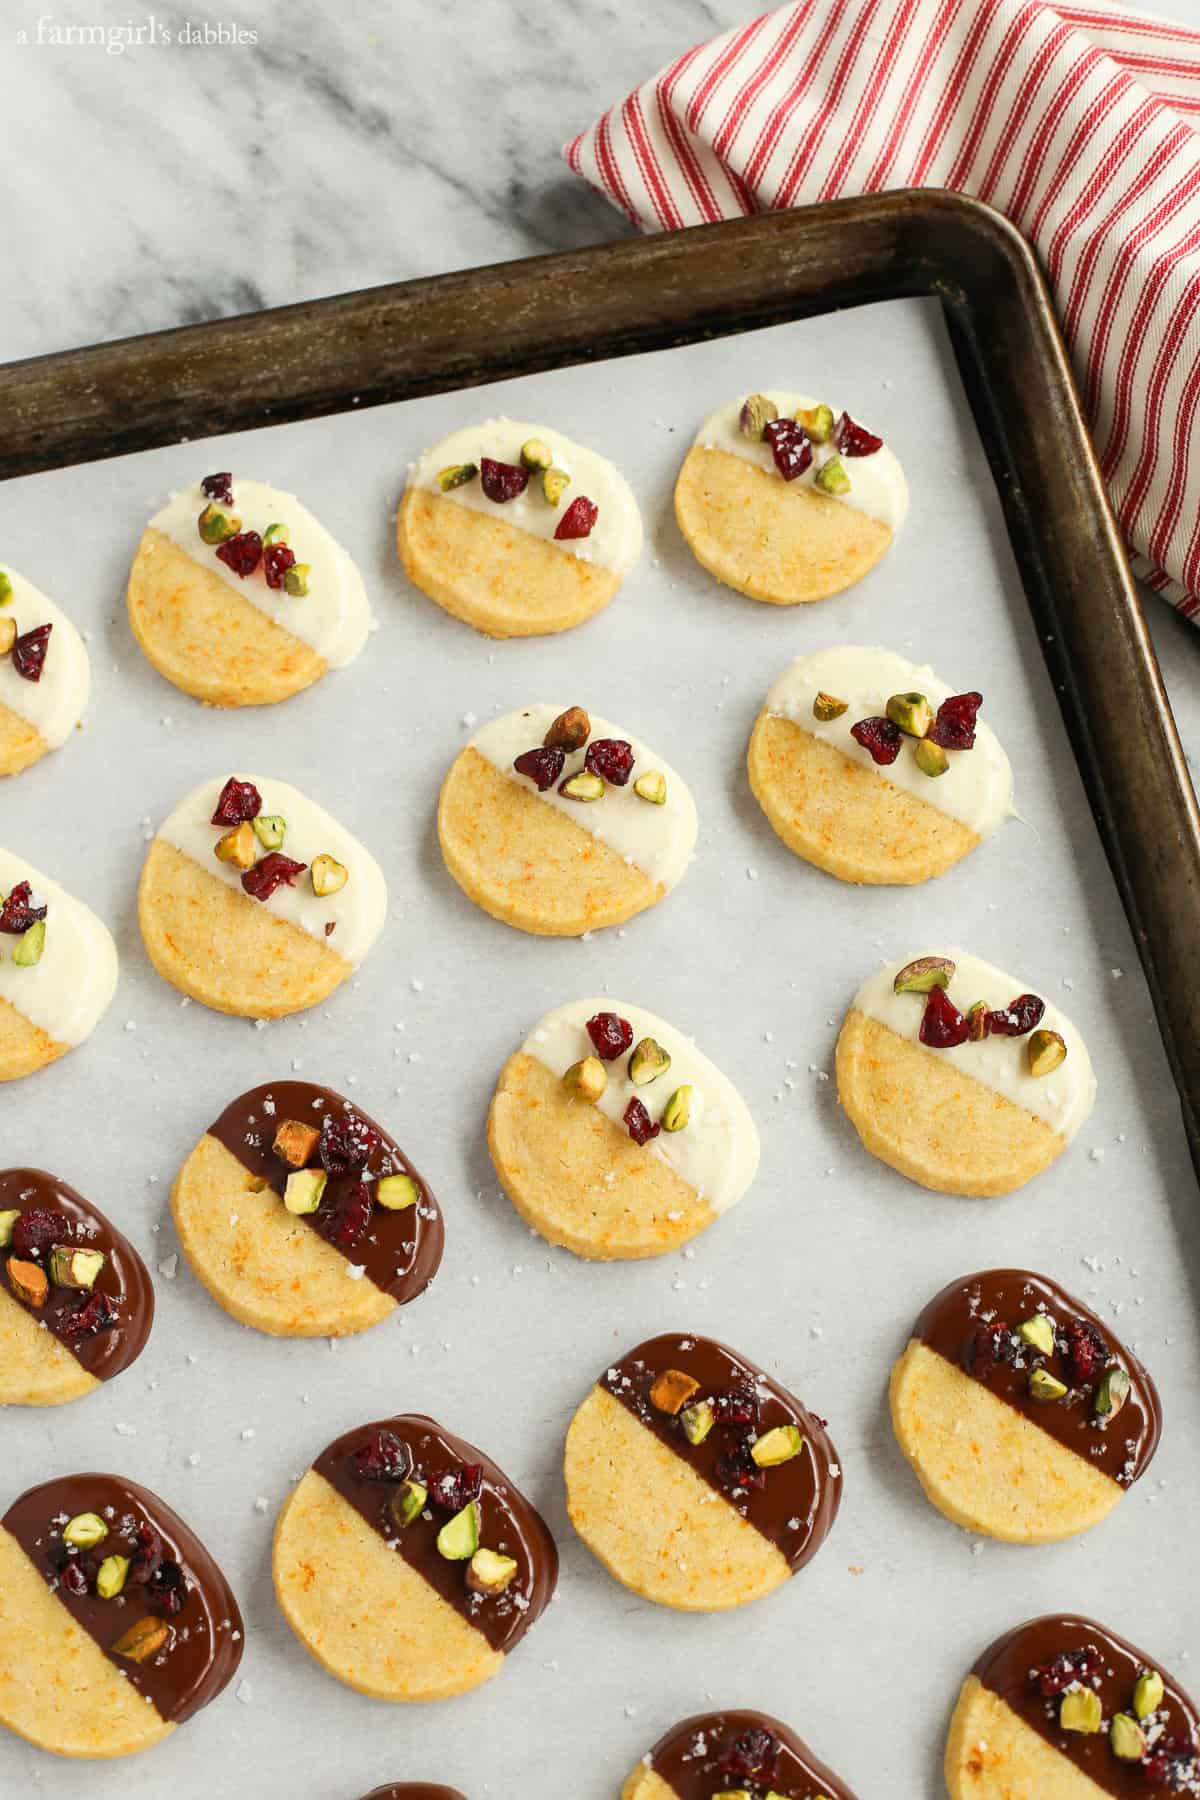 These Chocolate Dipped Orange Shortbread Cookies are festive for the ...